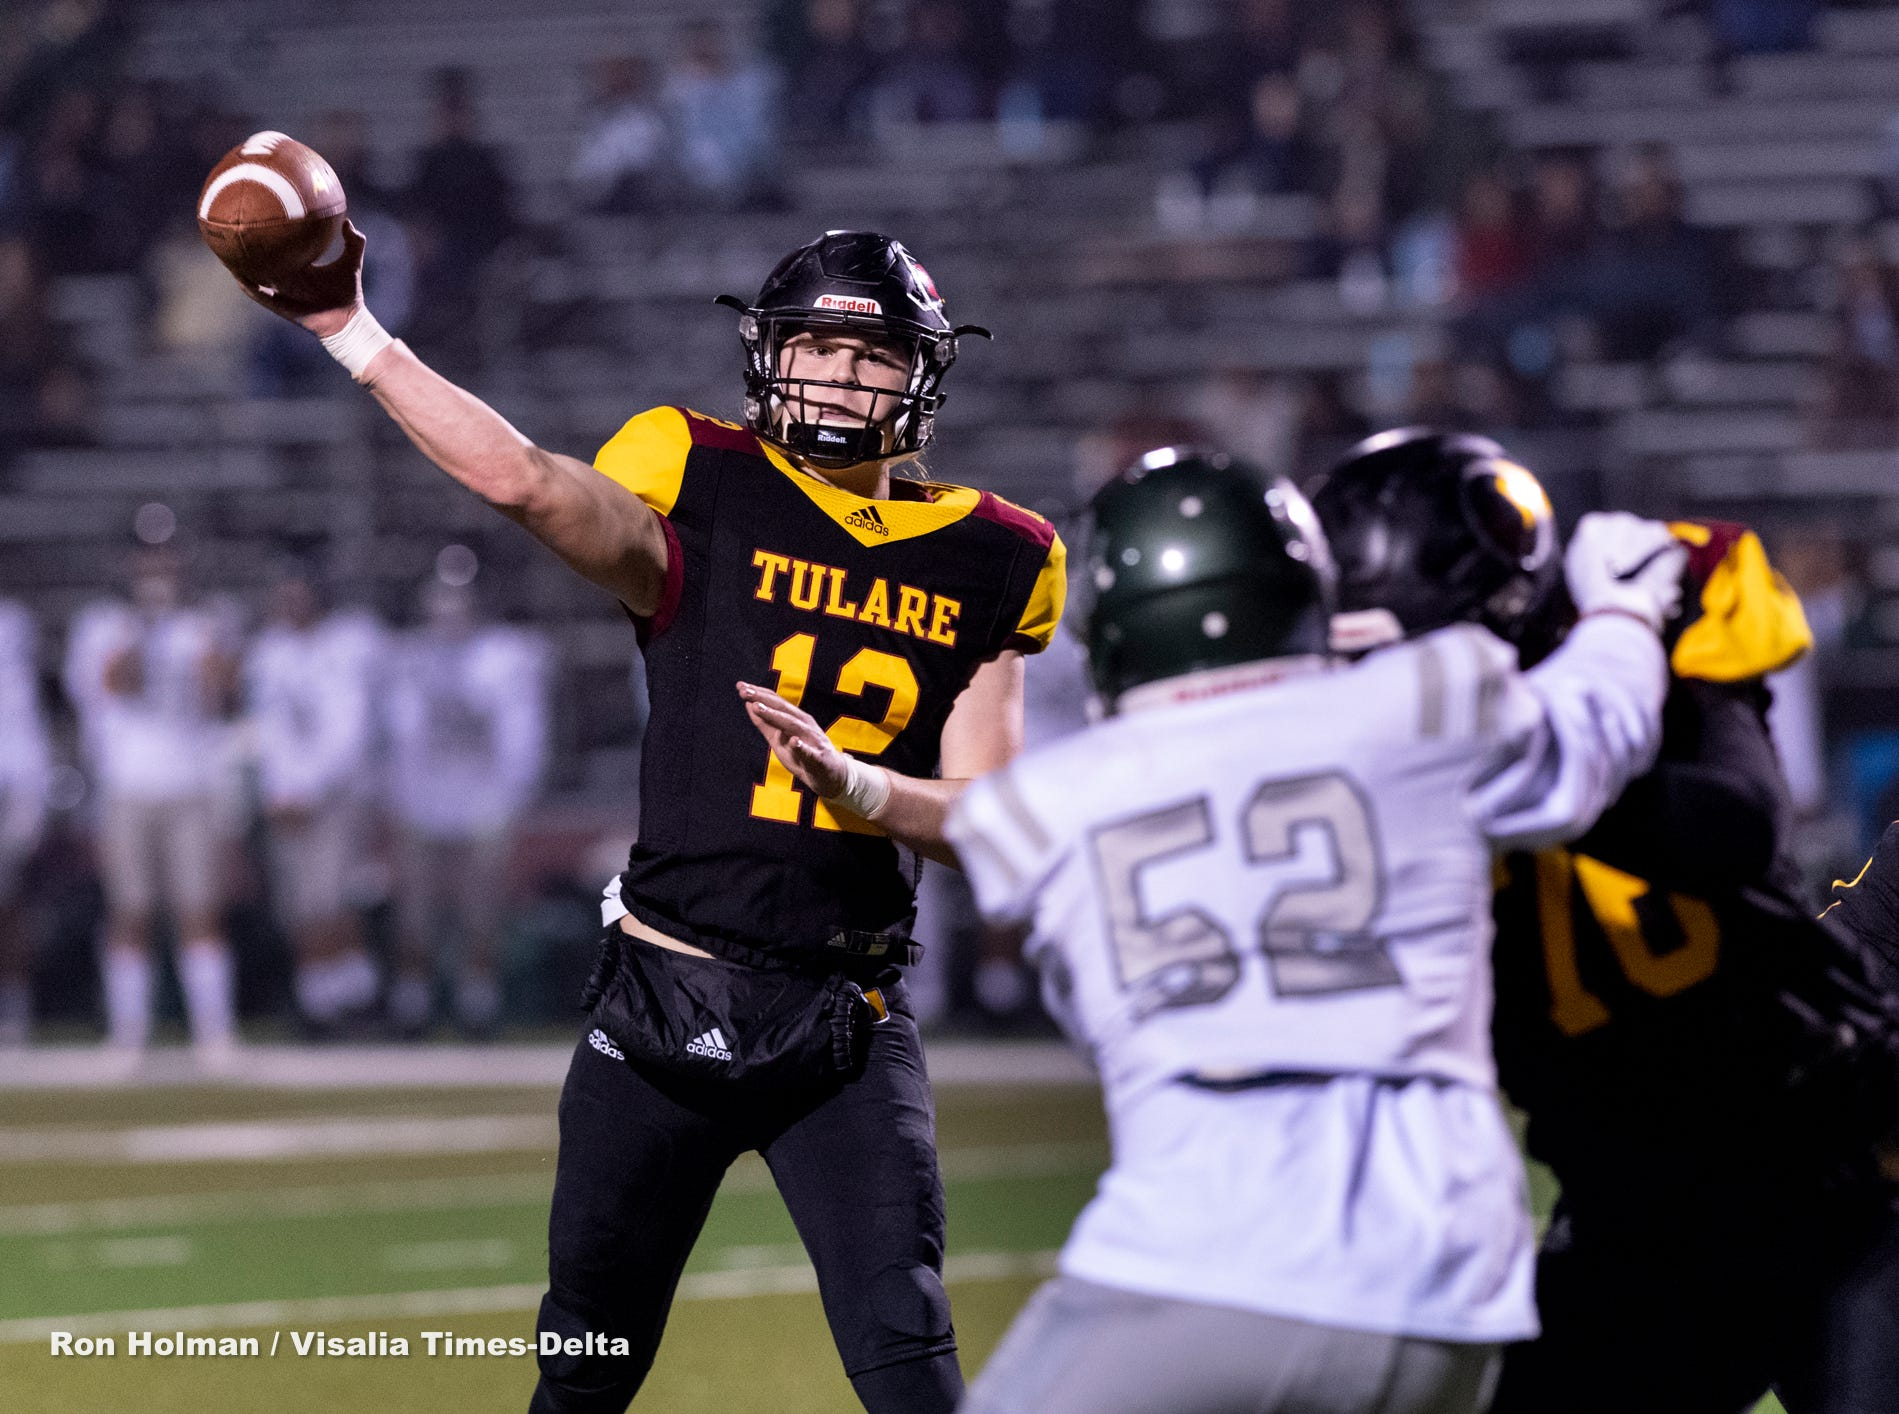 Tulare Union's Nathan Lamb passes against Dinuba in a Central Section Division II semifinal high school football playoff on Friday, November 16, 2018.